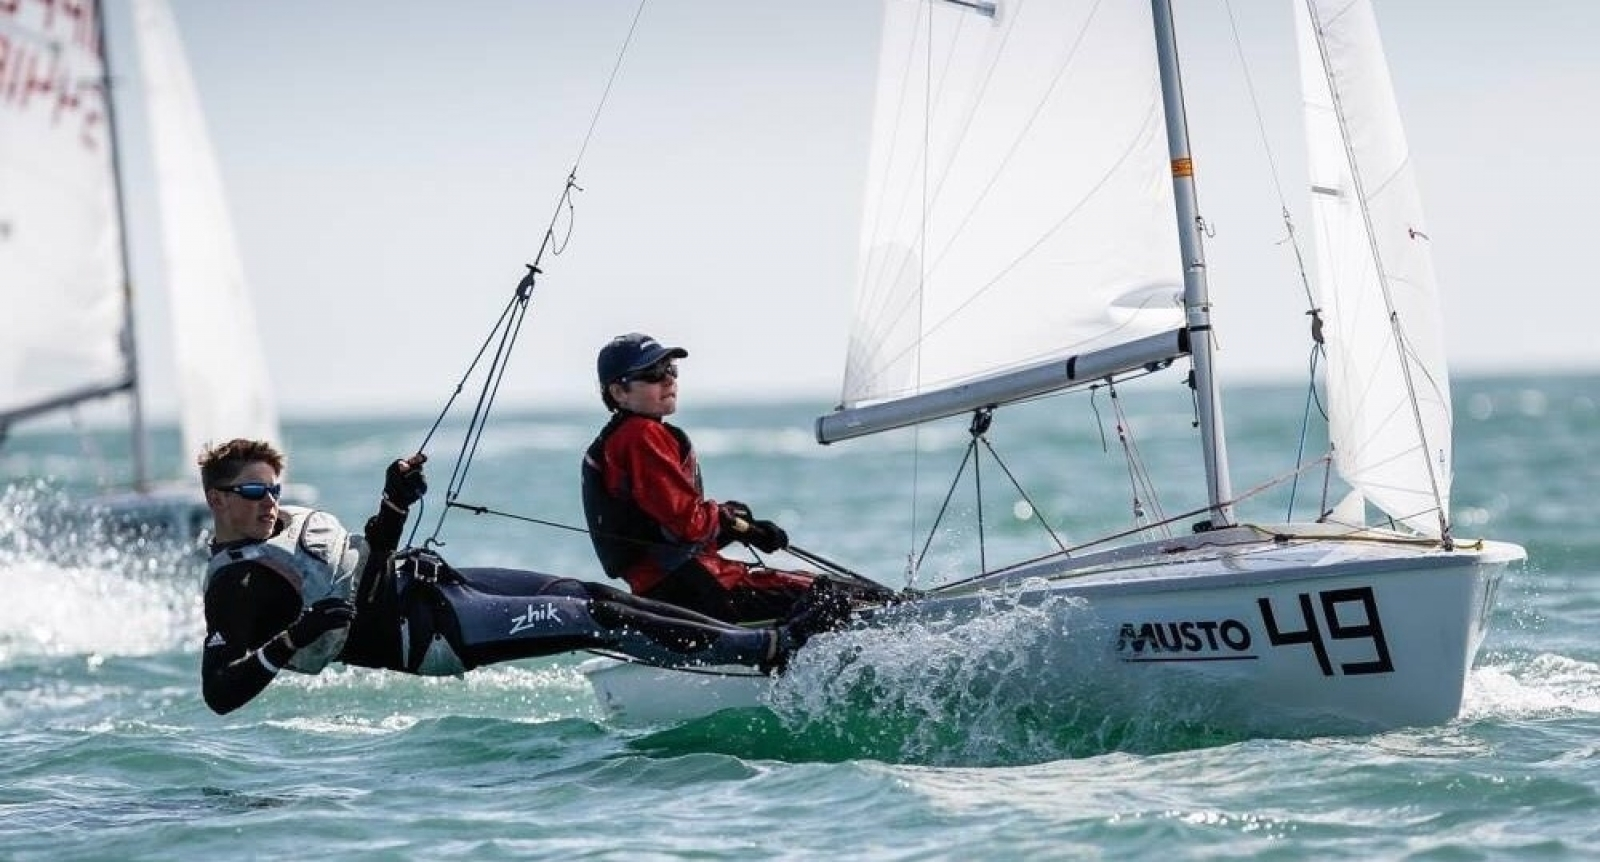 Gold for MPI sponsored sailor